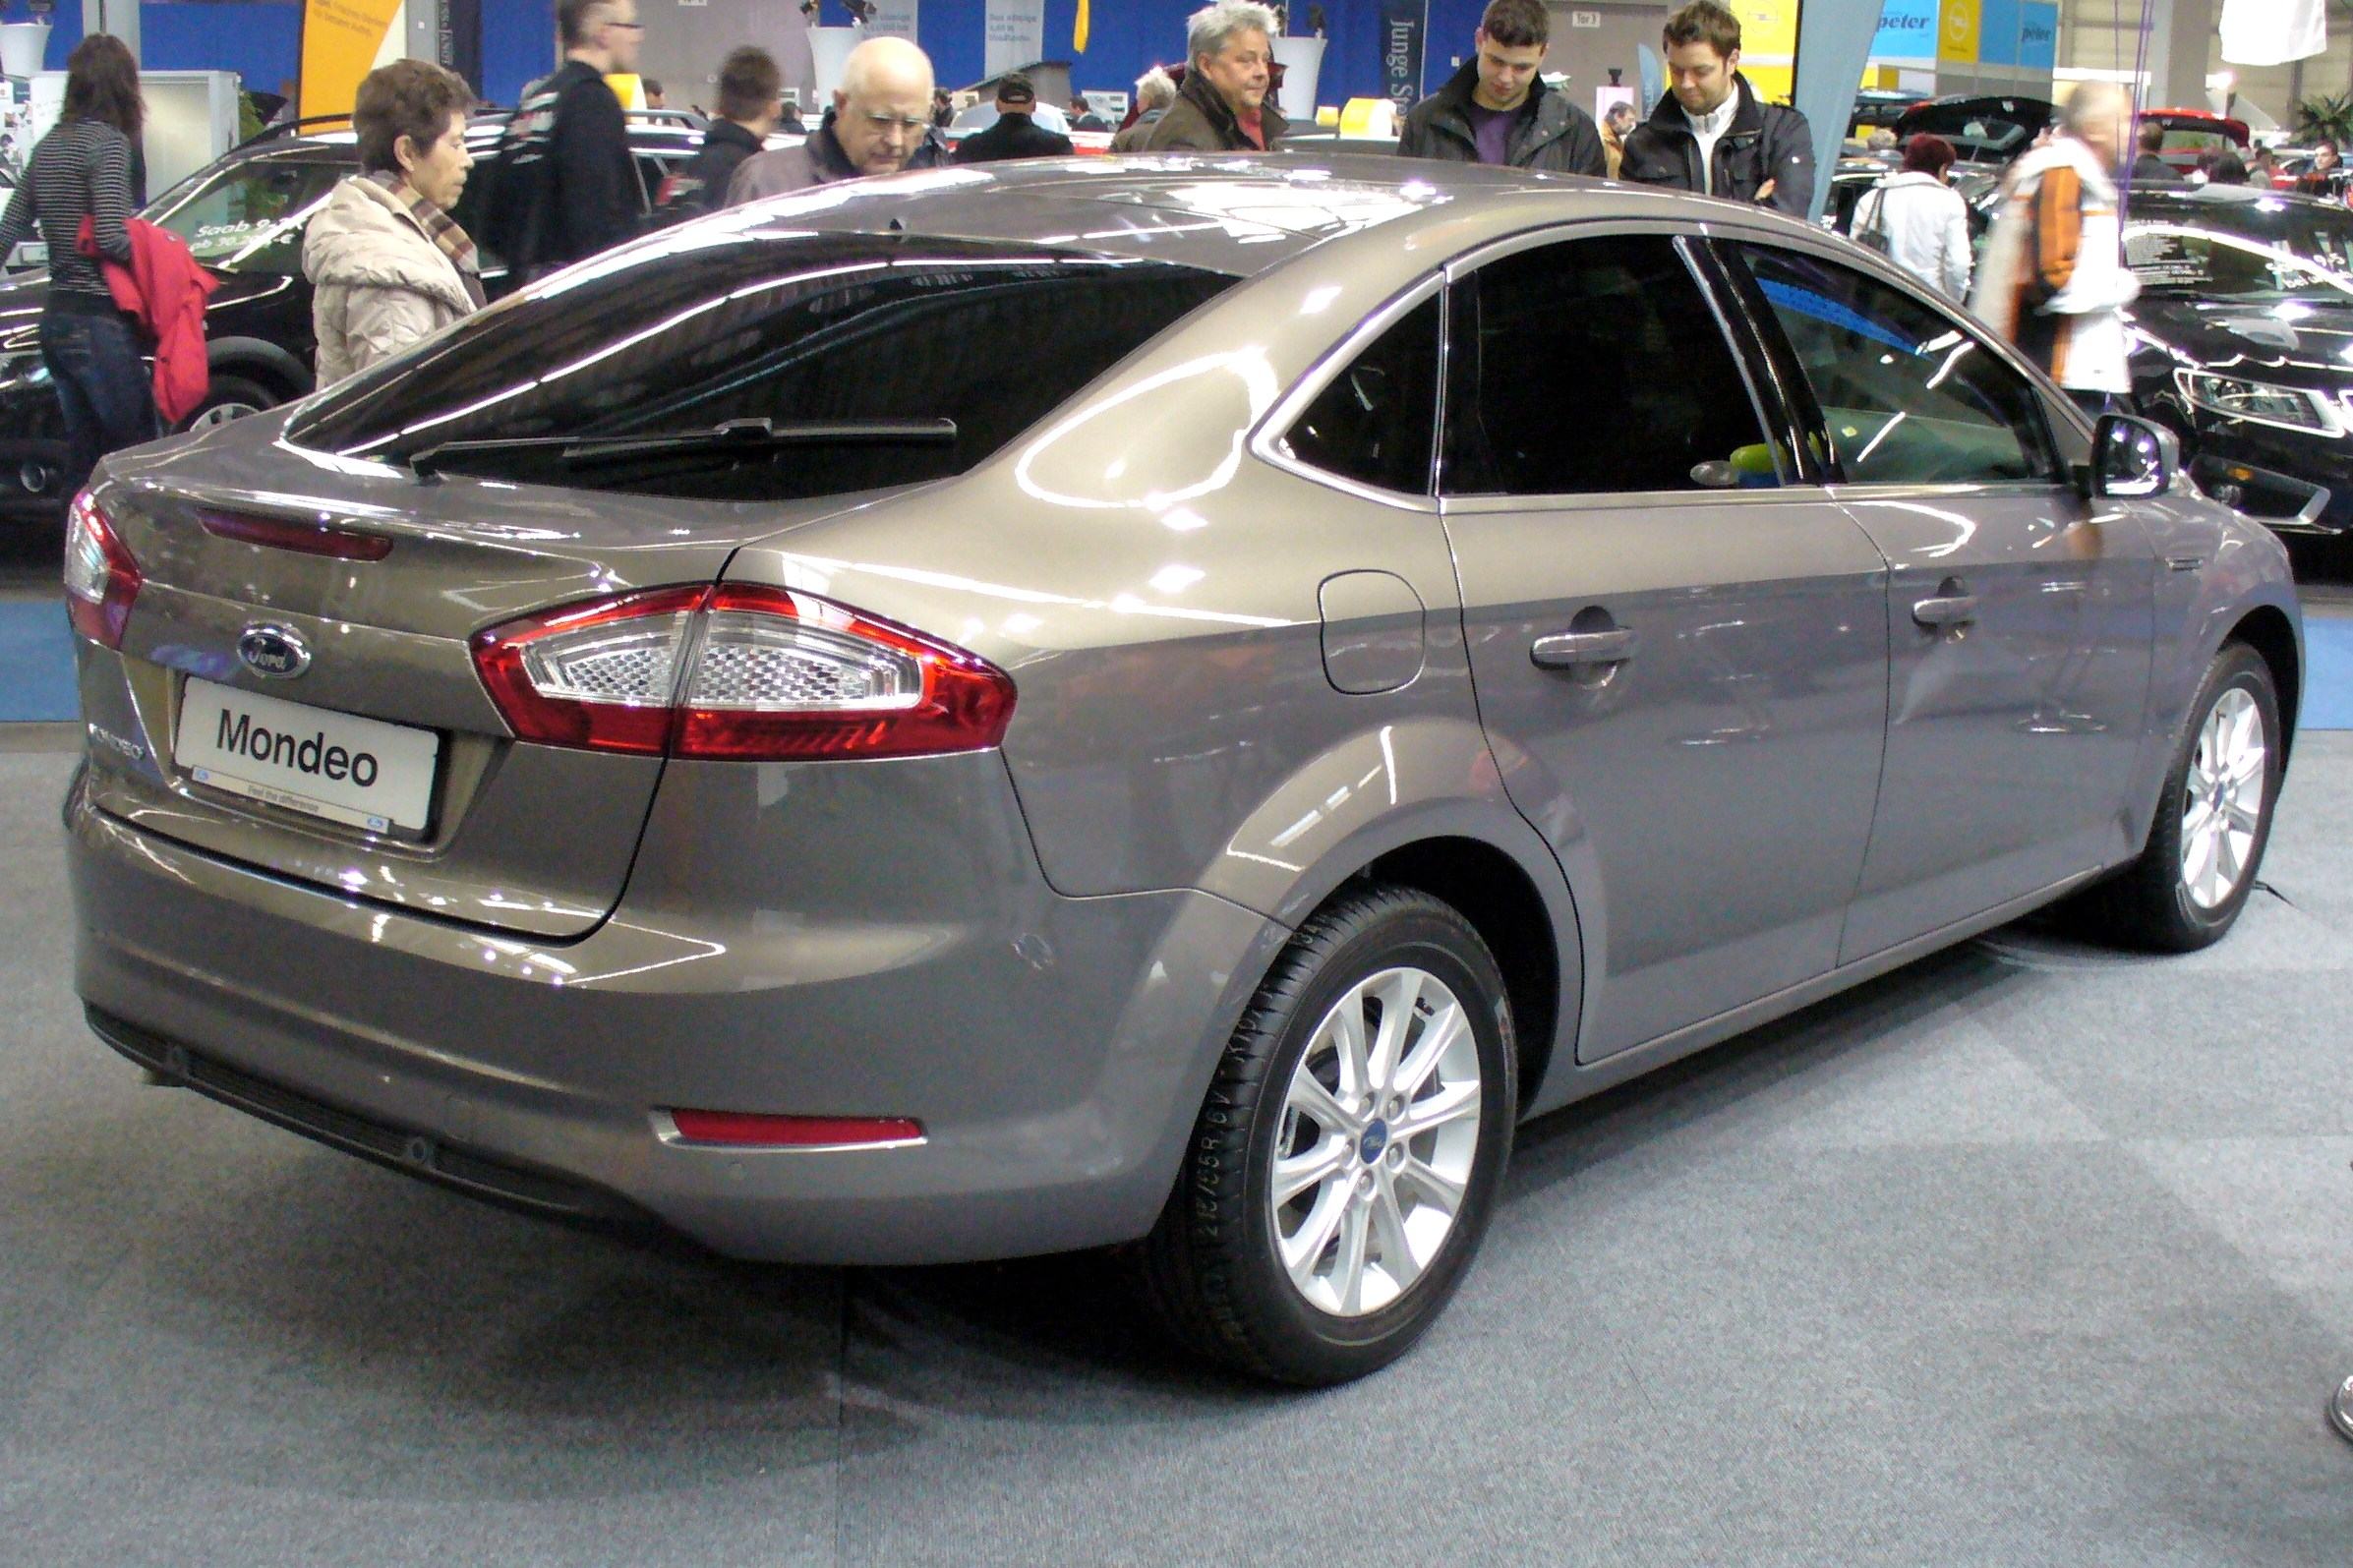 2010 Ford Mondeo #3